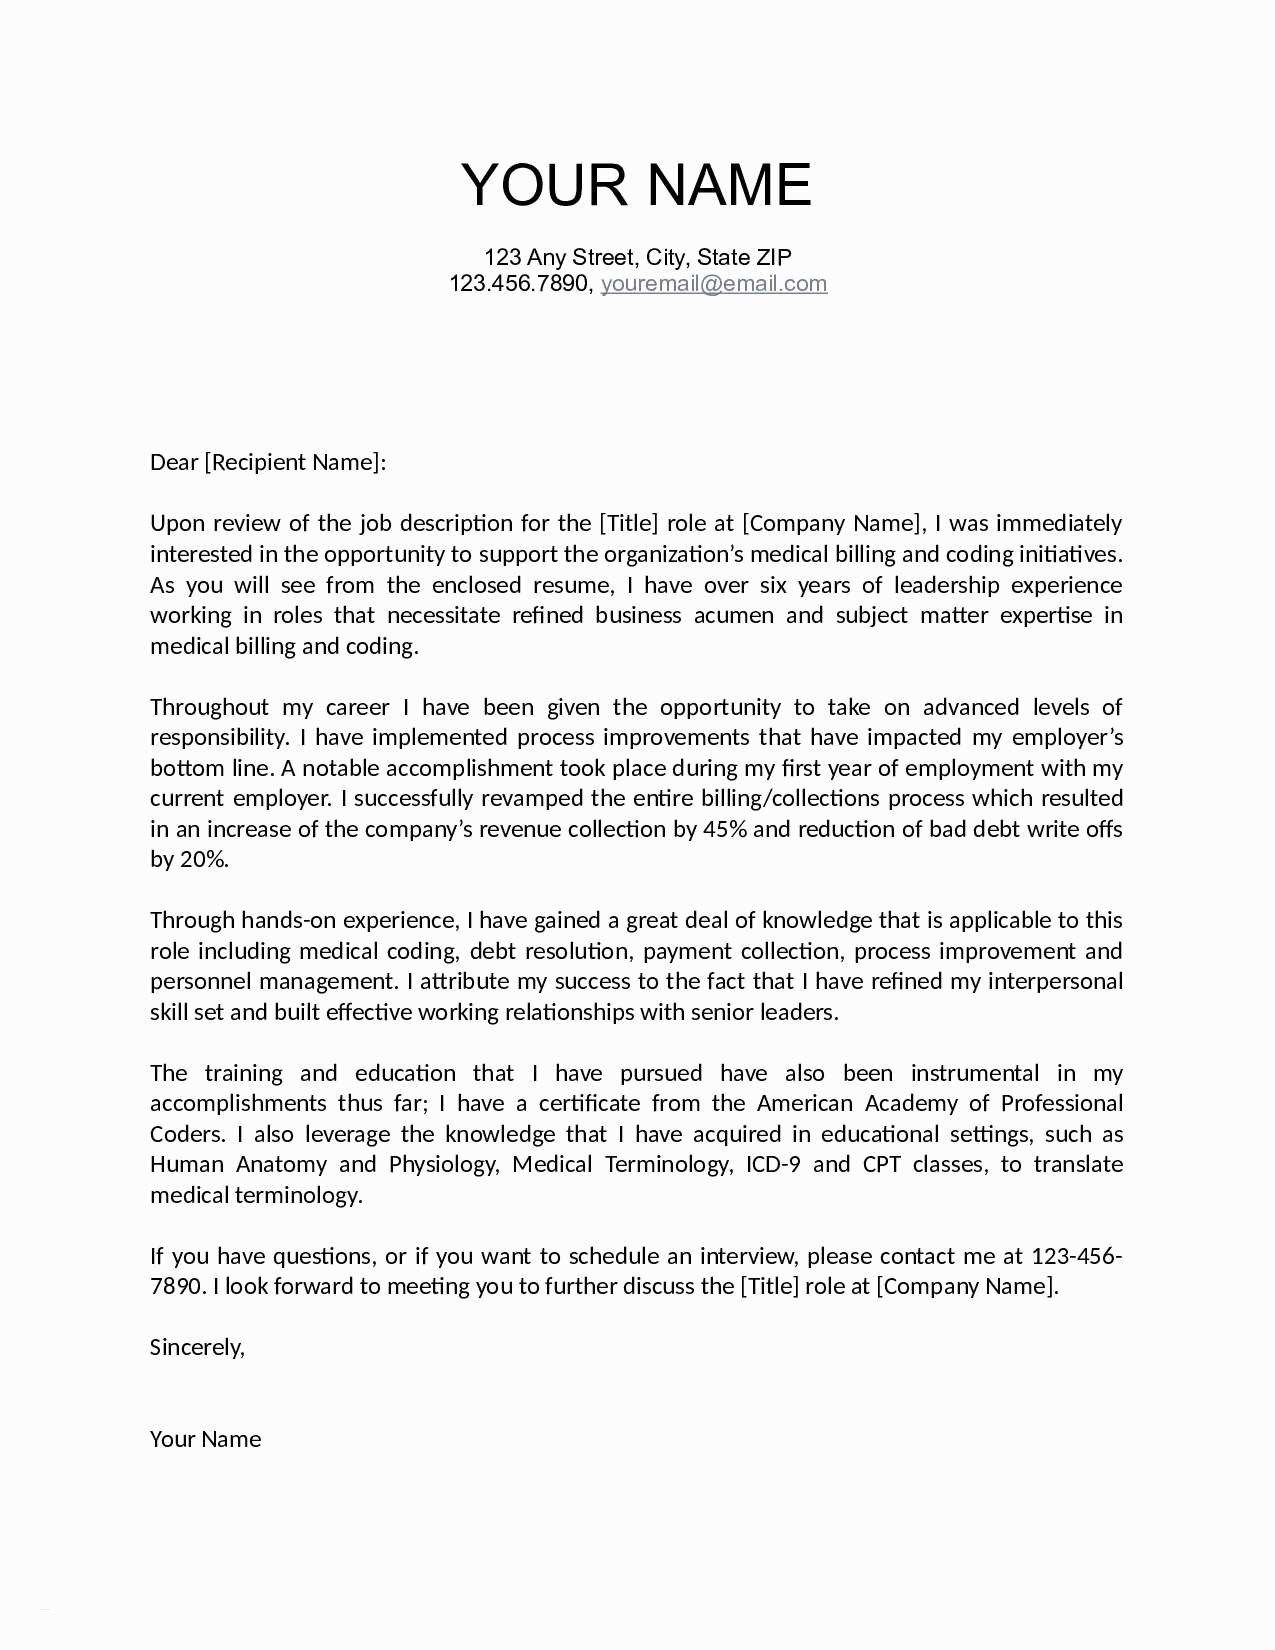 Cover Letter for Resume Cover Letter Resume format Apa and with